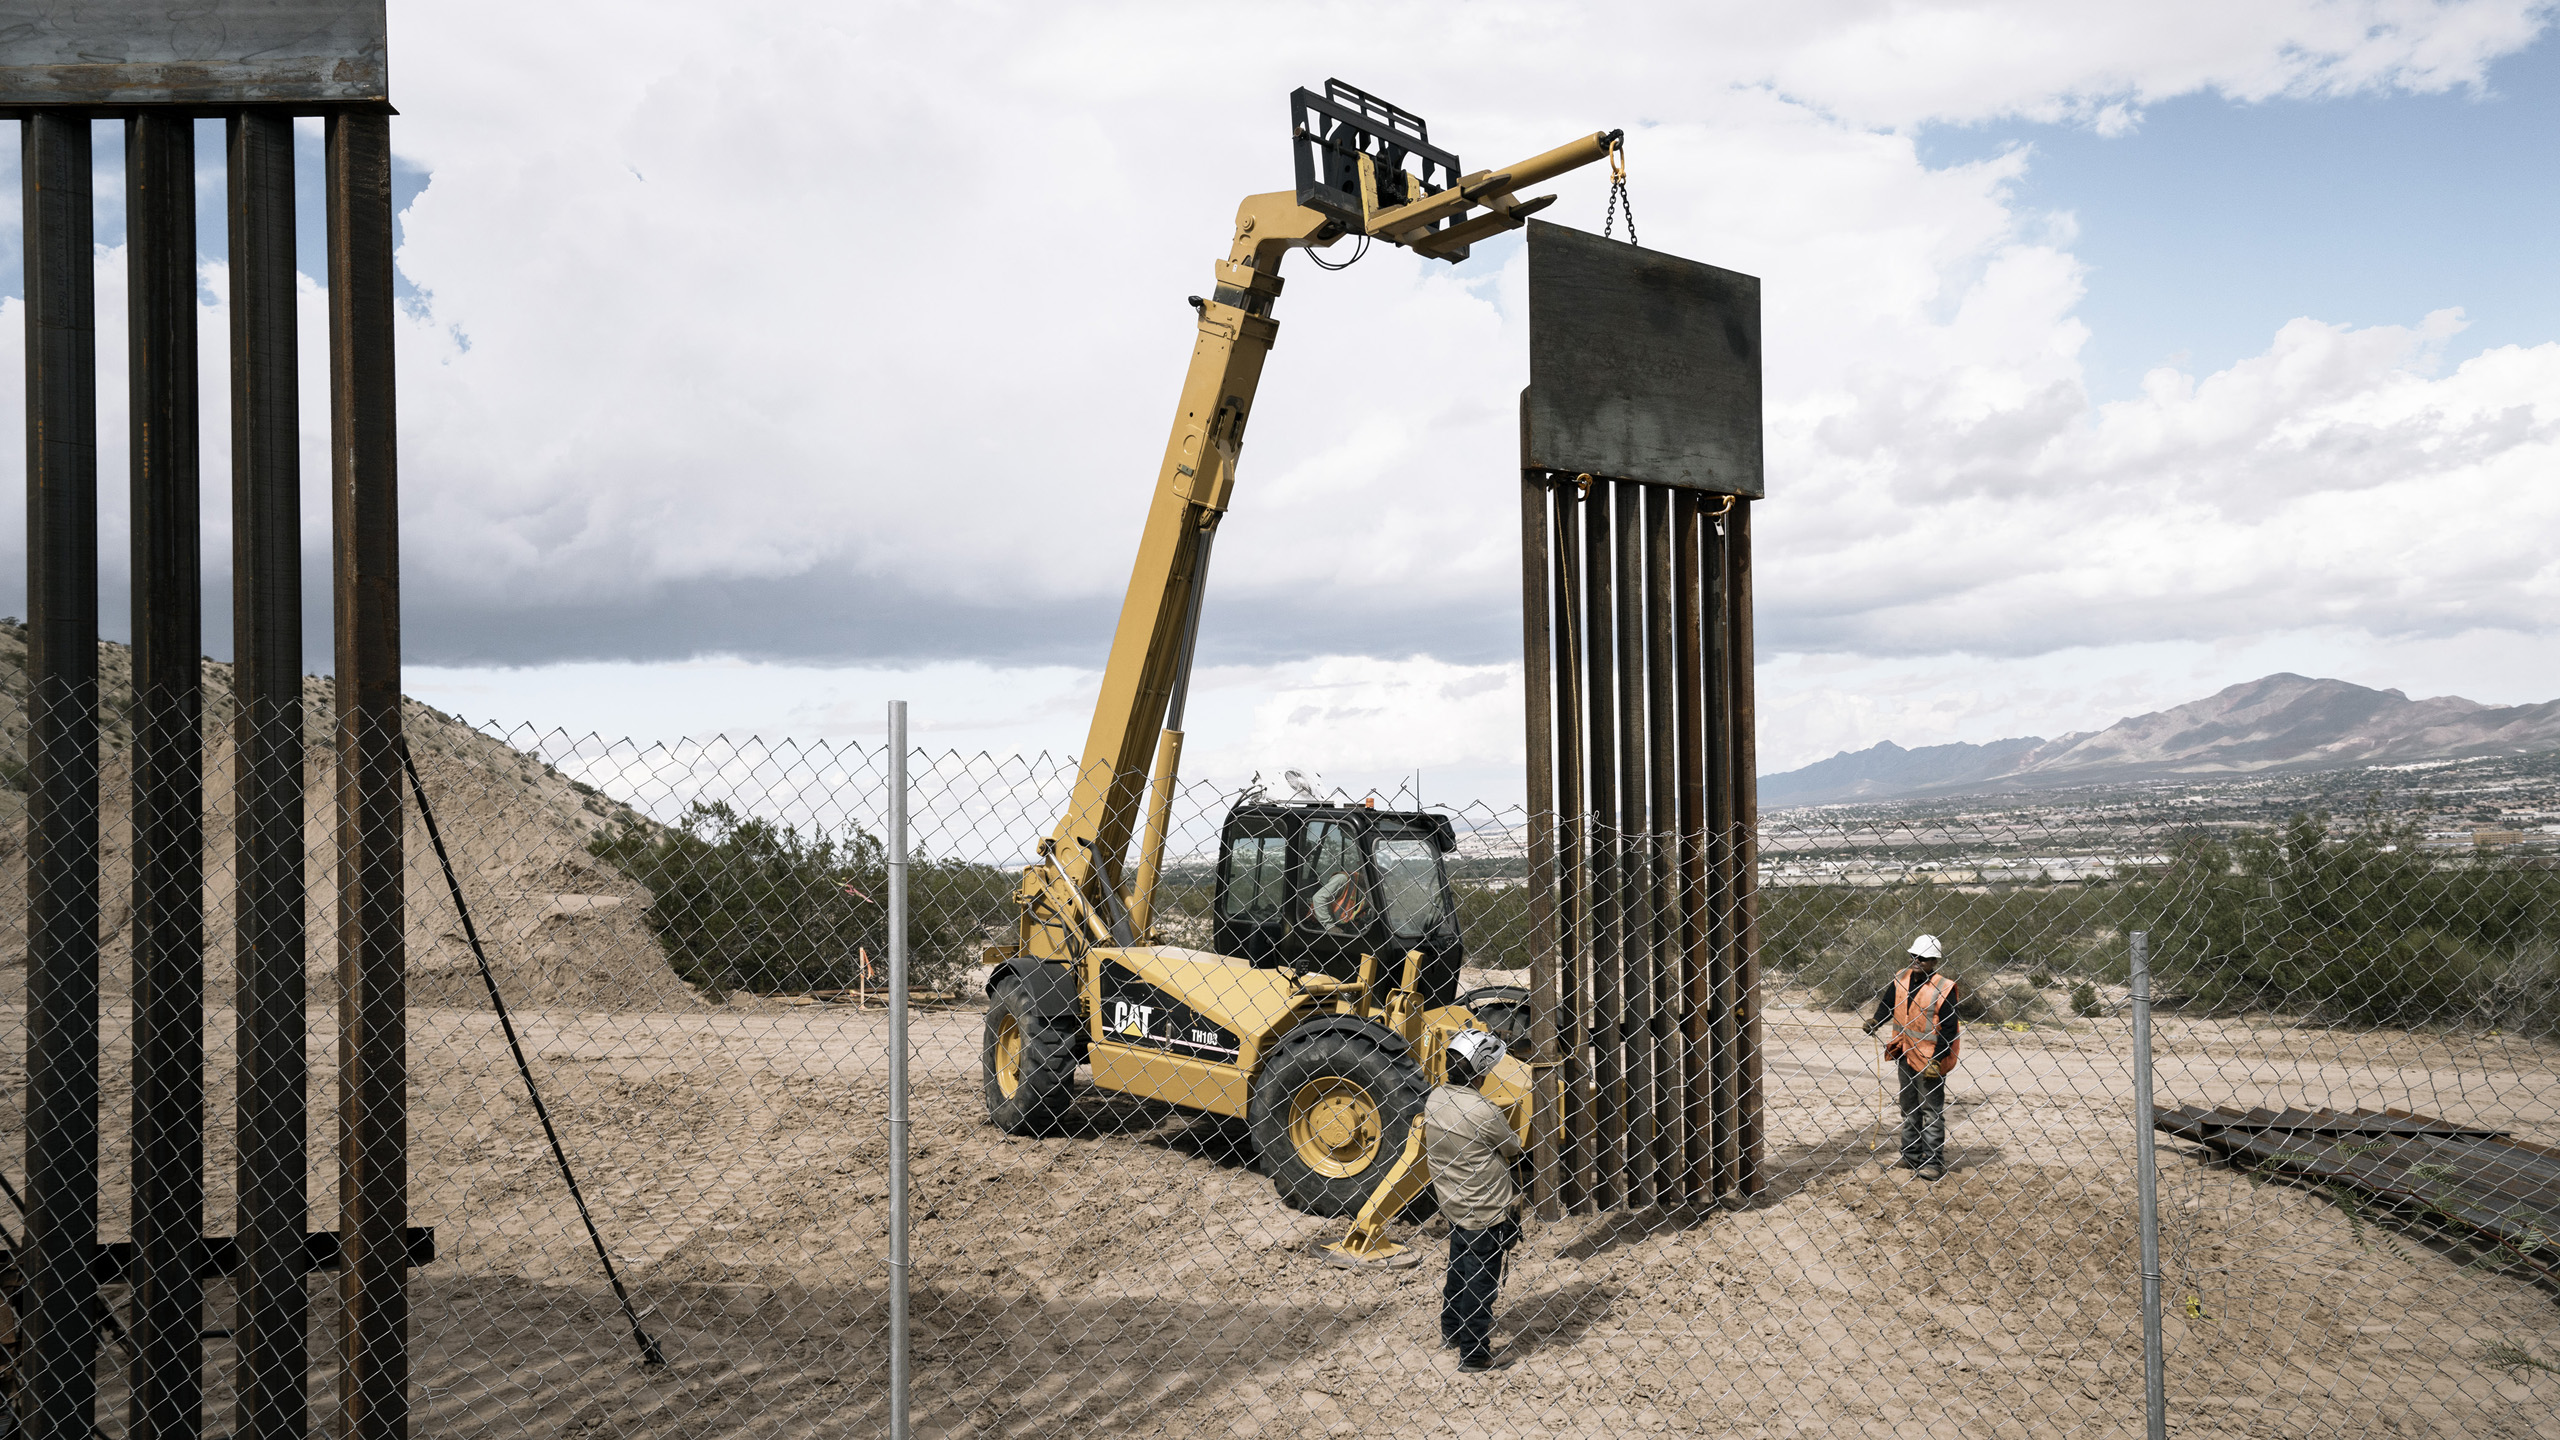 The border between Mexico and the U.S. seen from the outskirts of Ciudad de Juarez where U.S. authorities are continuing construction of the border fence between the two countries. Oct. 3, 2016.